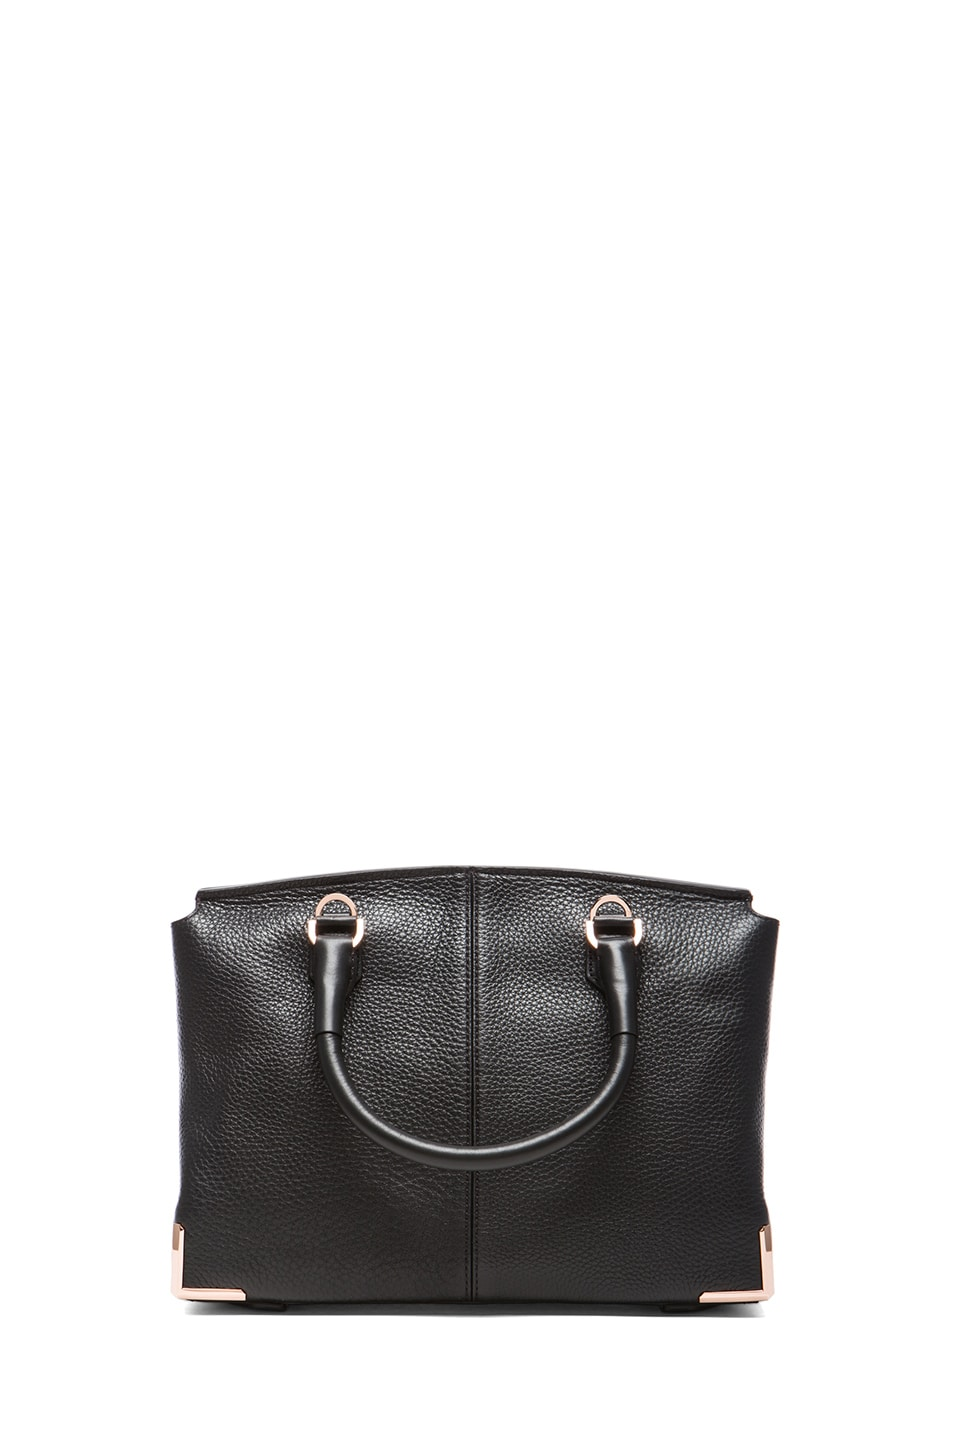 Image 2 of Alexander Wang Large Marion Soft Pebble Leather with Rose Gold Hardware in Black